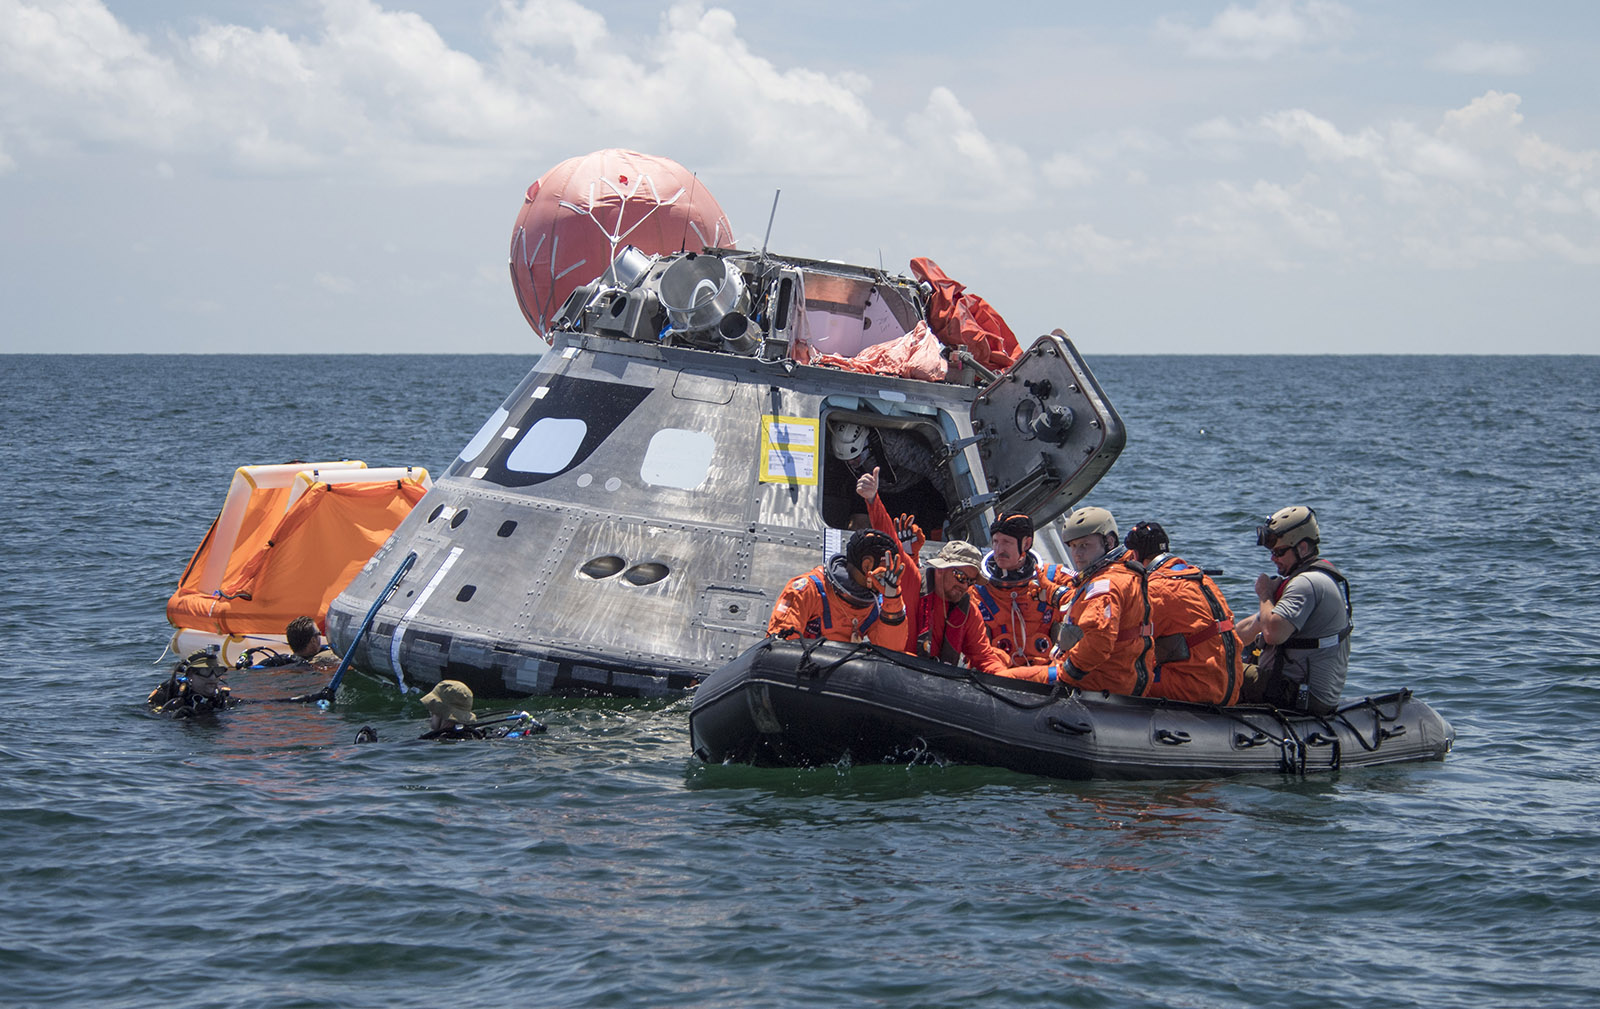 Getting NASA astronauts safely out of Orion